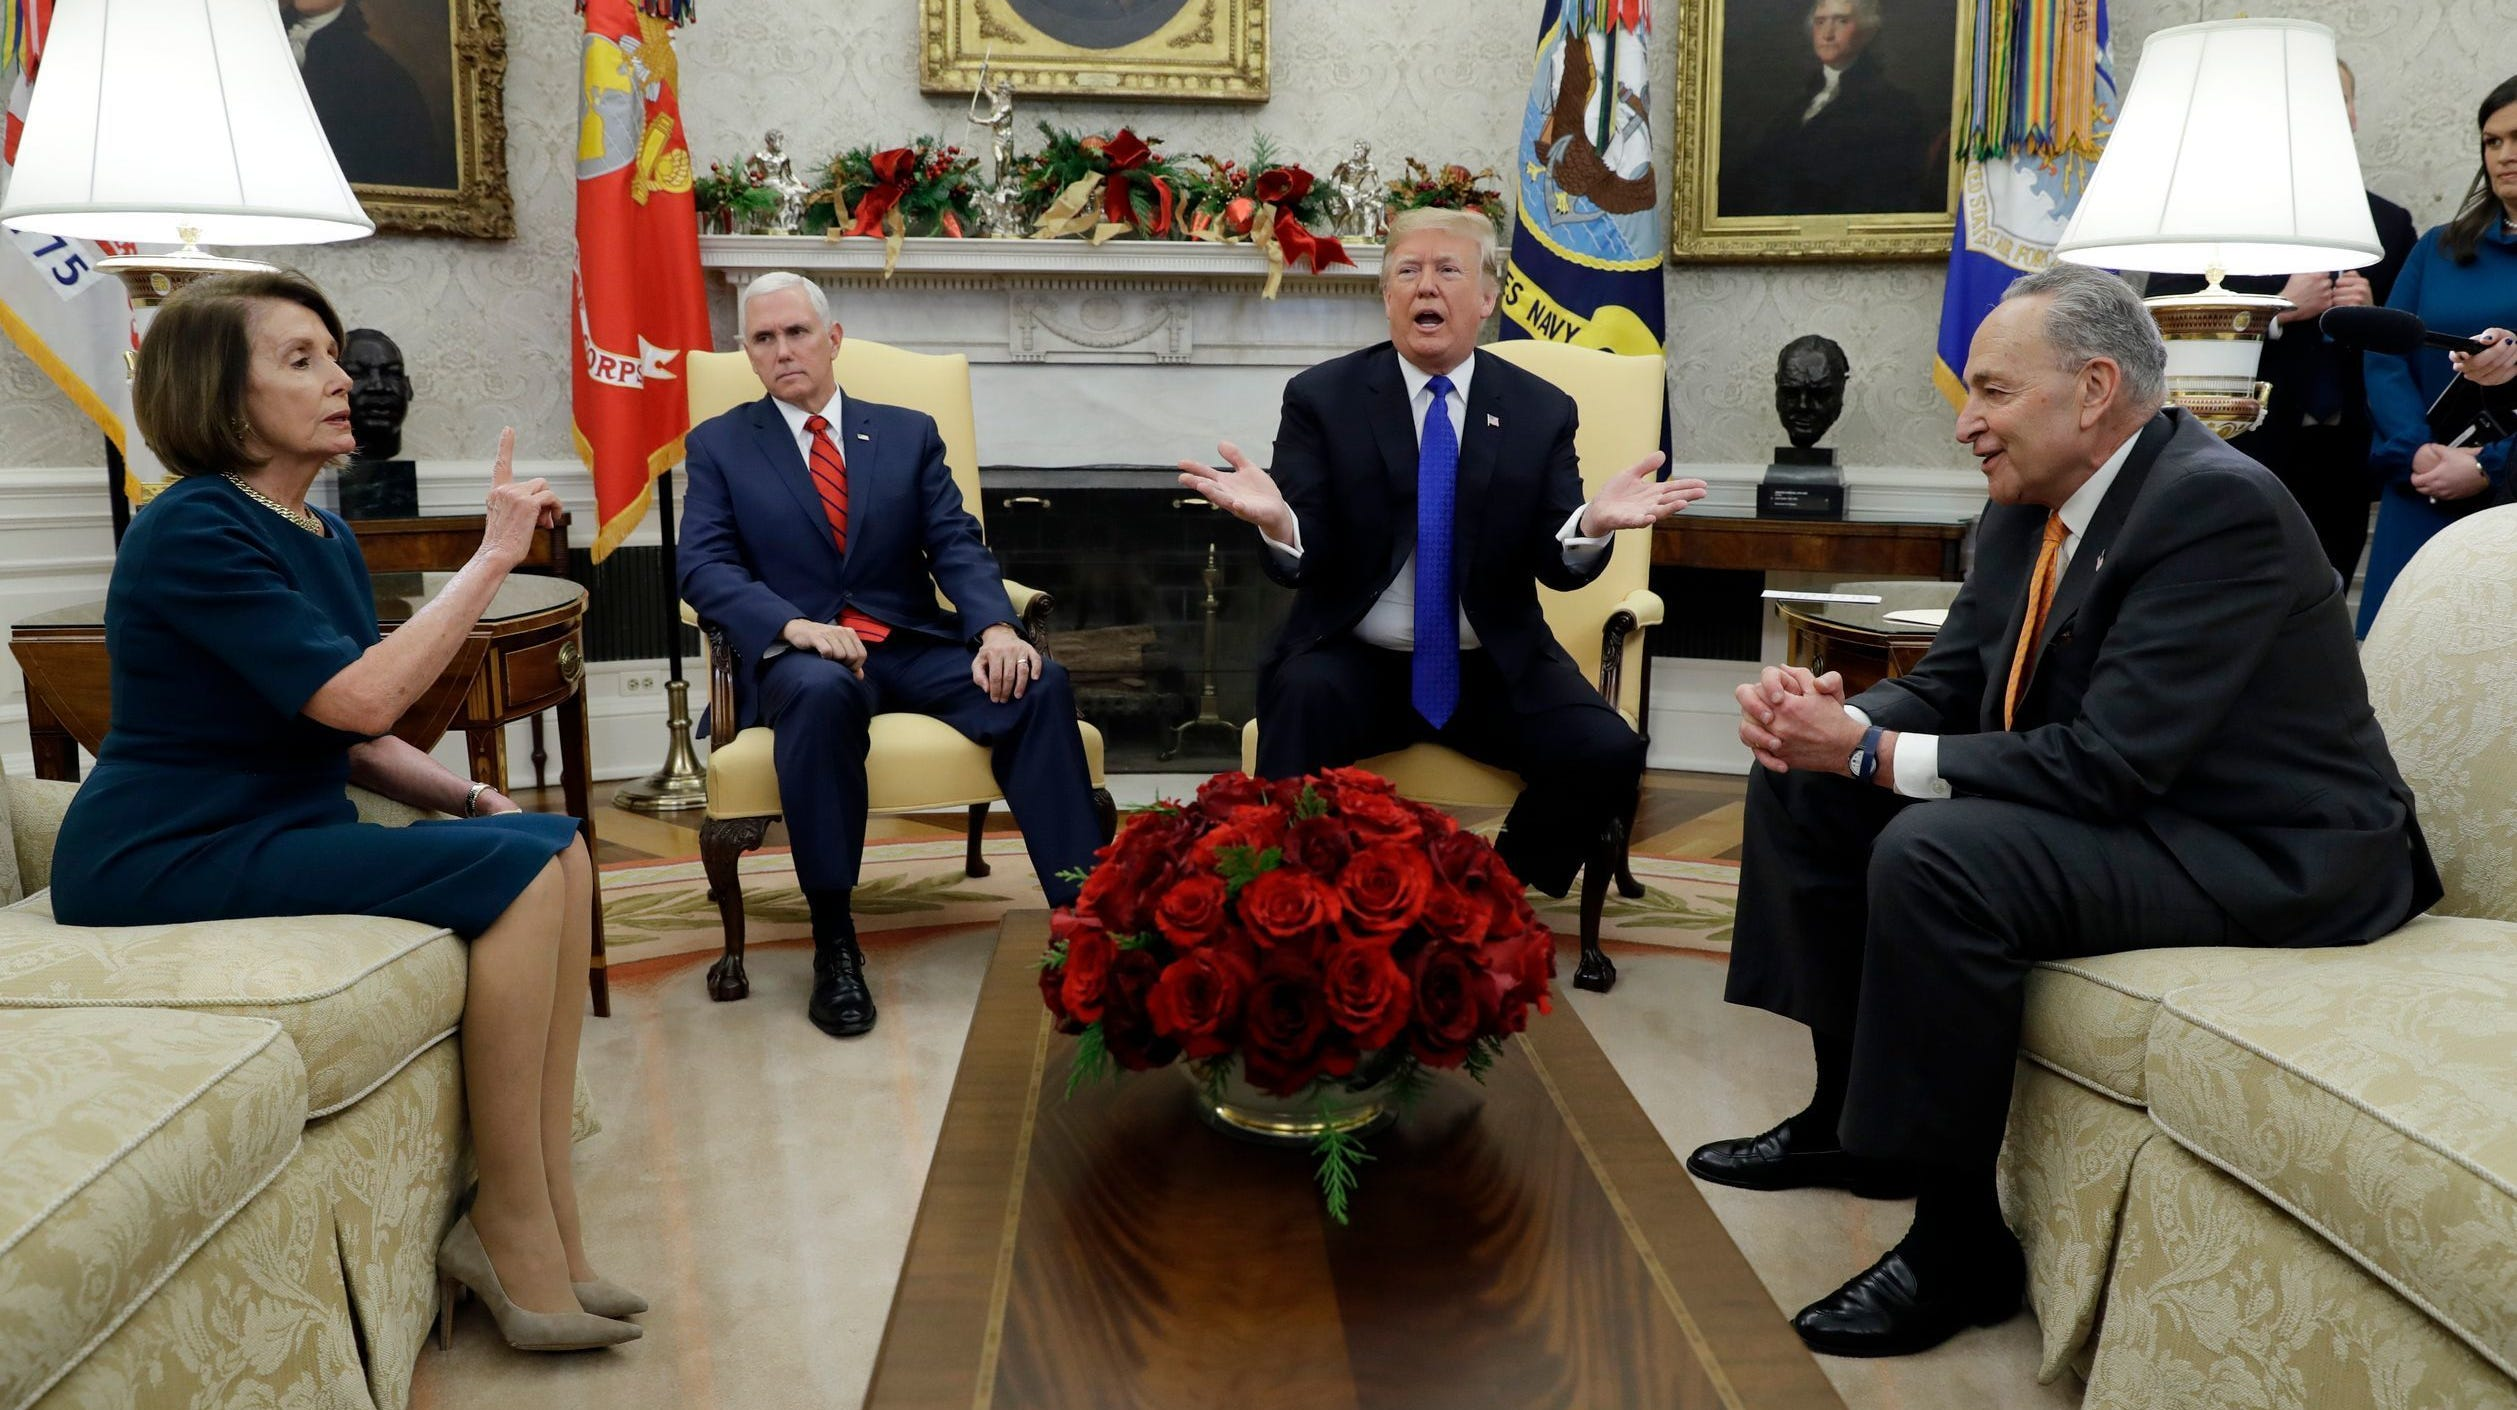 President Donald Trump, Vice President Mike Pence, Senate Democratic leader  Chuck Schumer, D-N.Y., and House Democratic leader Nancy Pelosi, D-Calif., at a meeting last month.